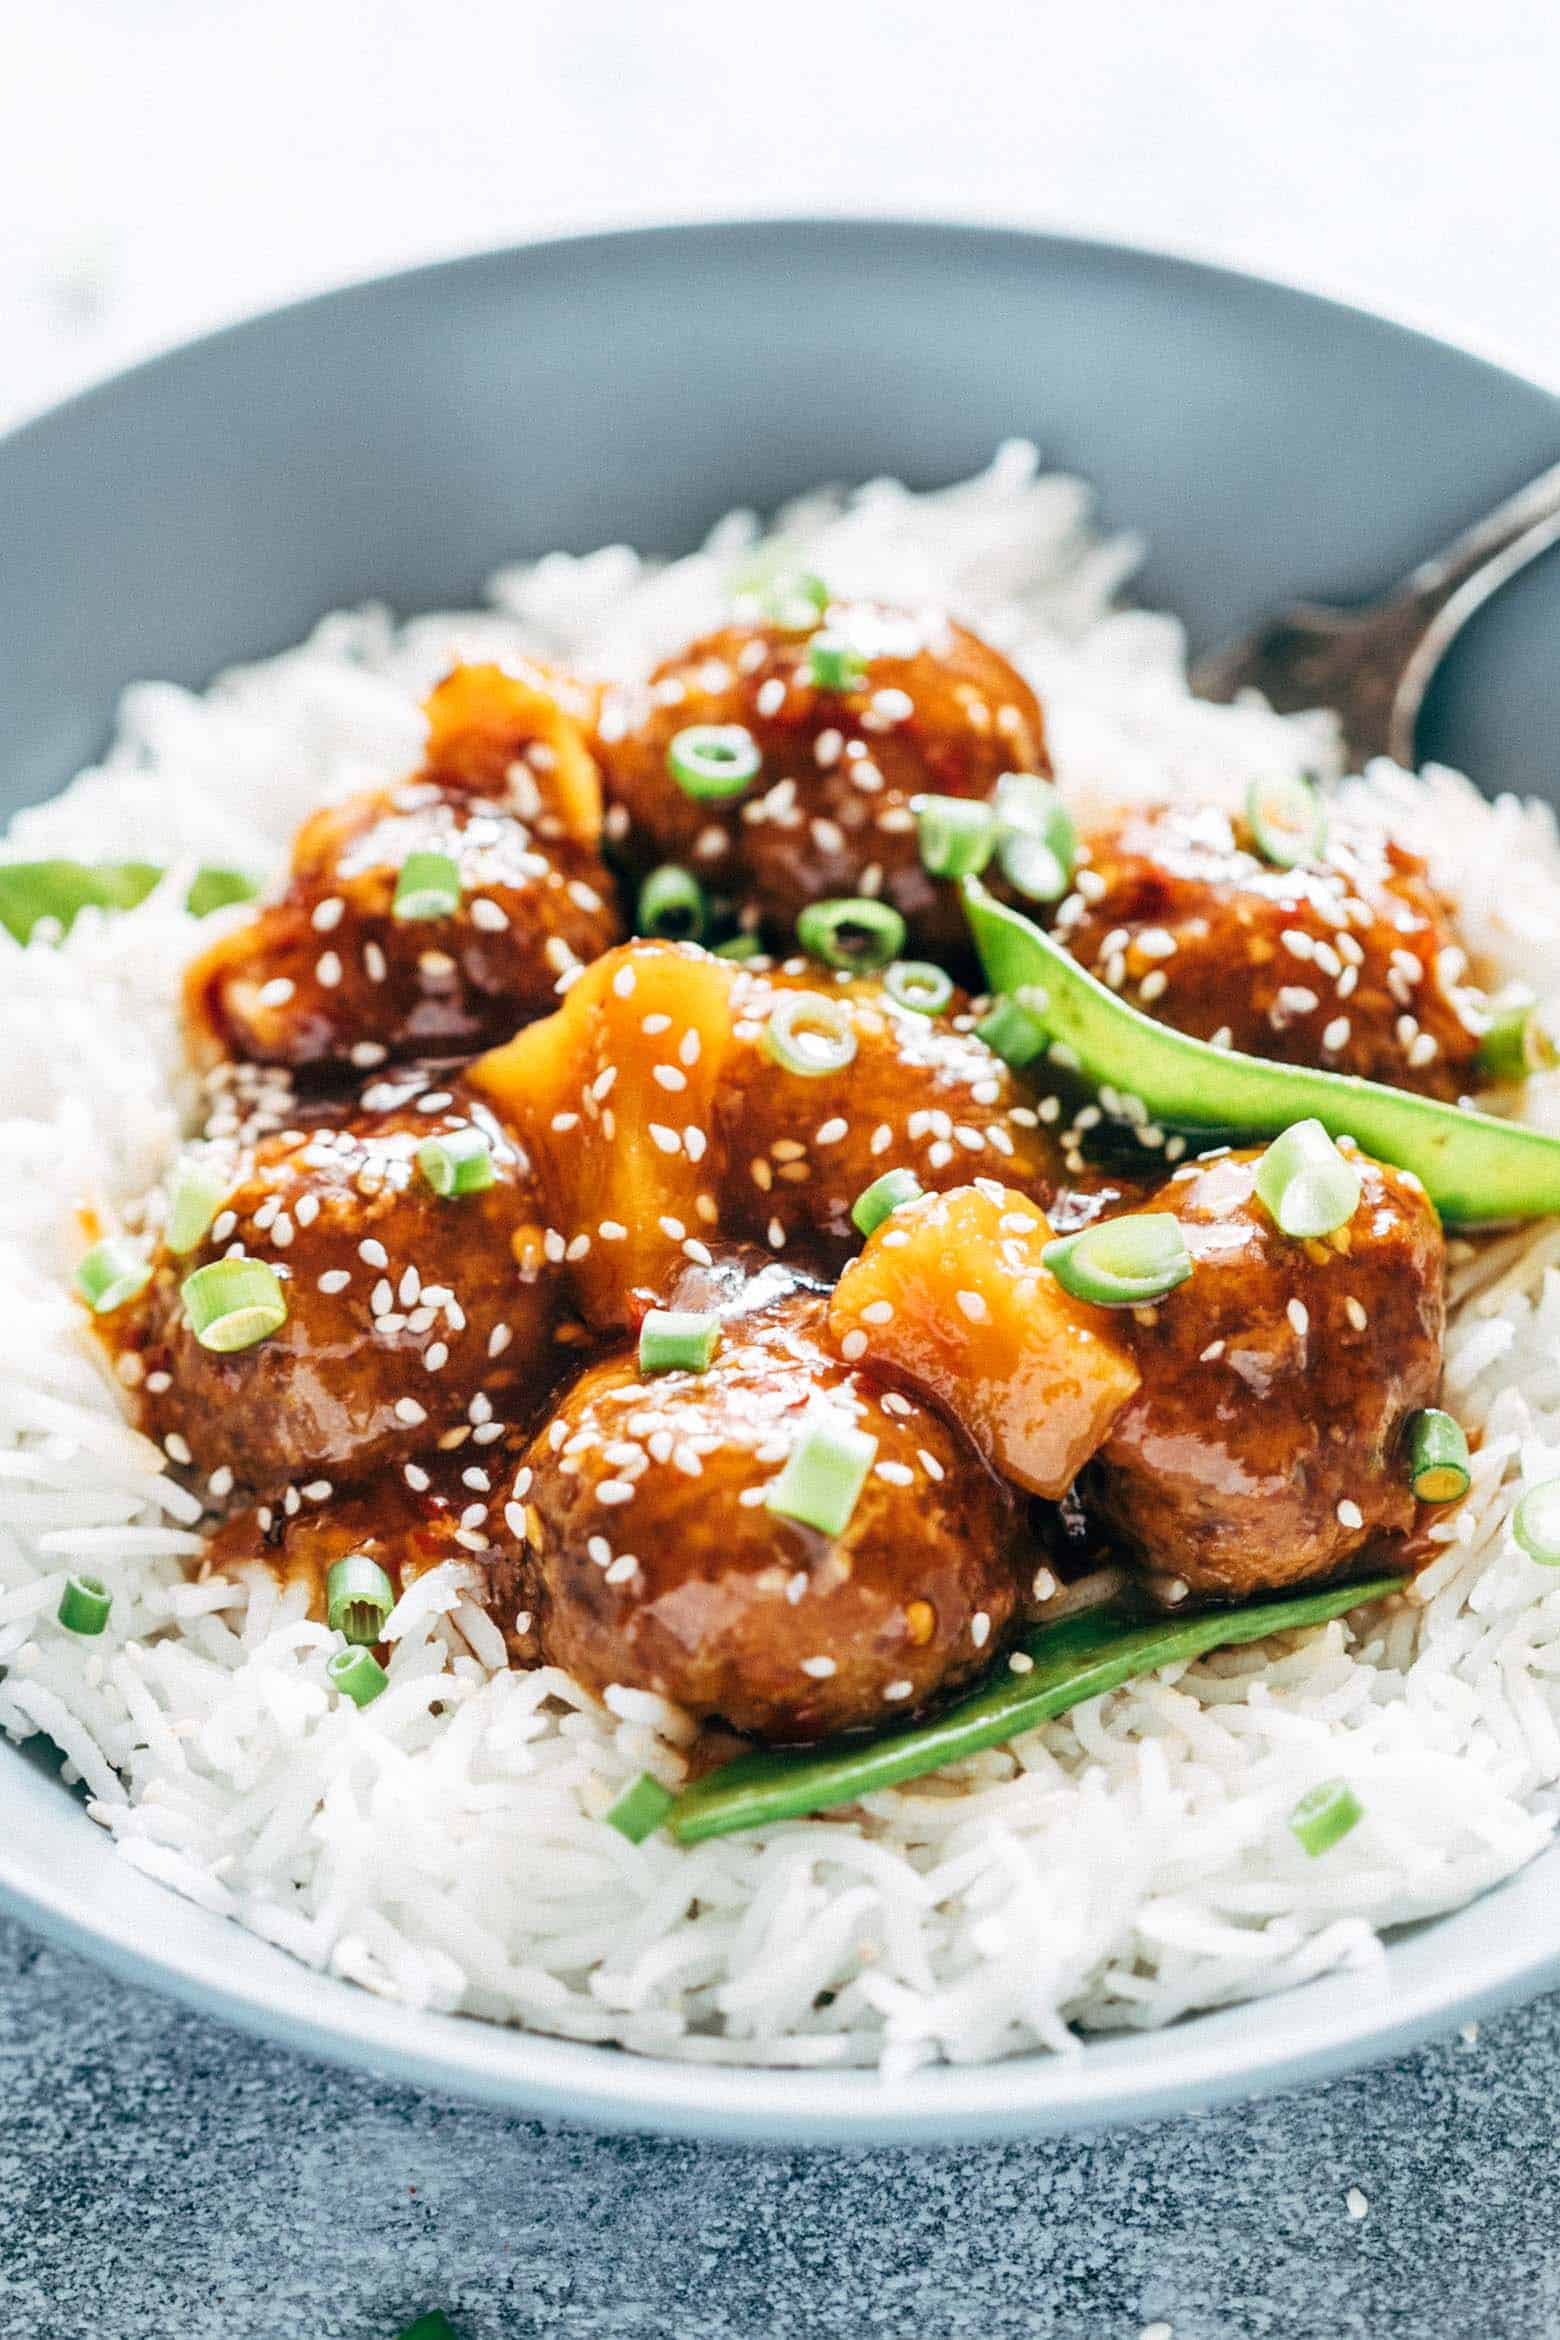 Asian inspired slow cooker teriyaki meatballs with pineapple are super easy, low carb and can be made in your crockpot. Juicy, succulent, these teriyaki pineapple meatballs can also be baked in the oven.